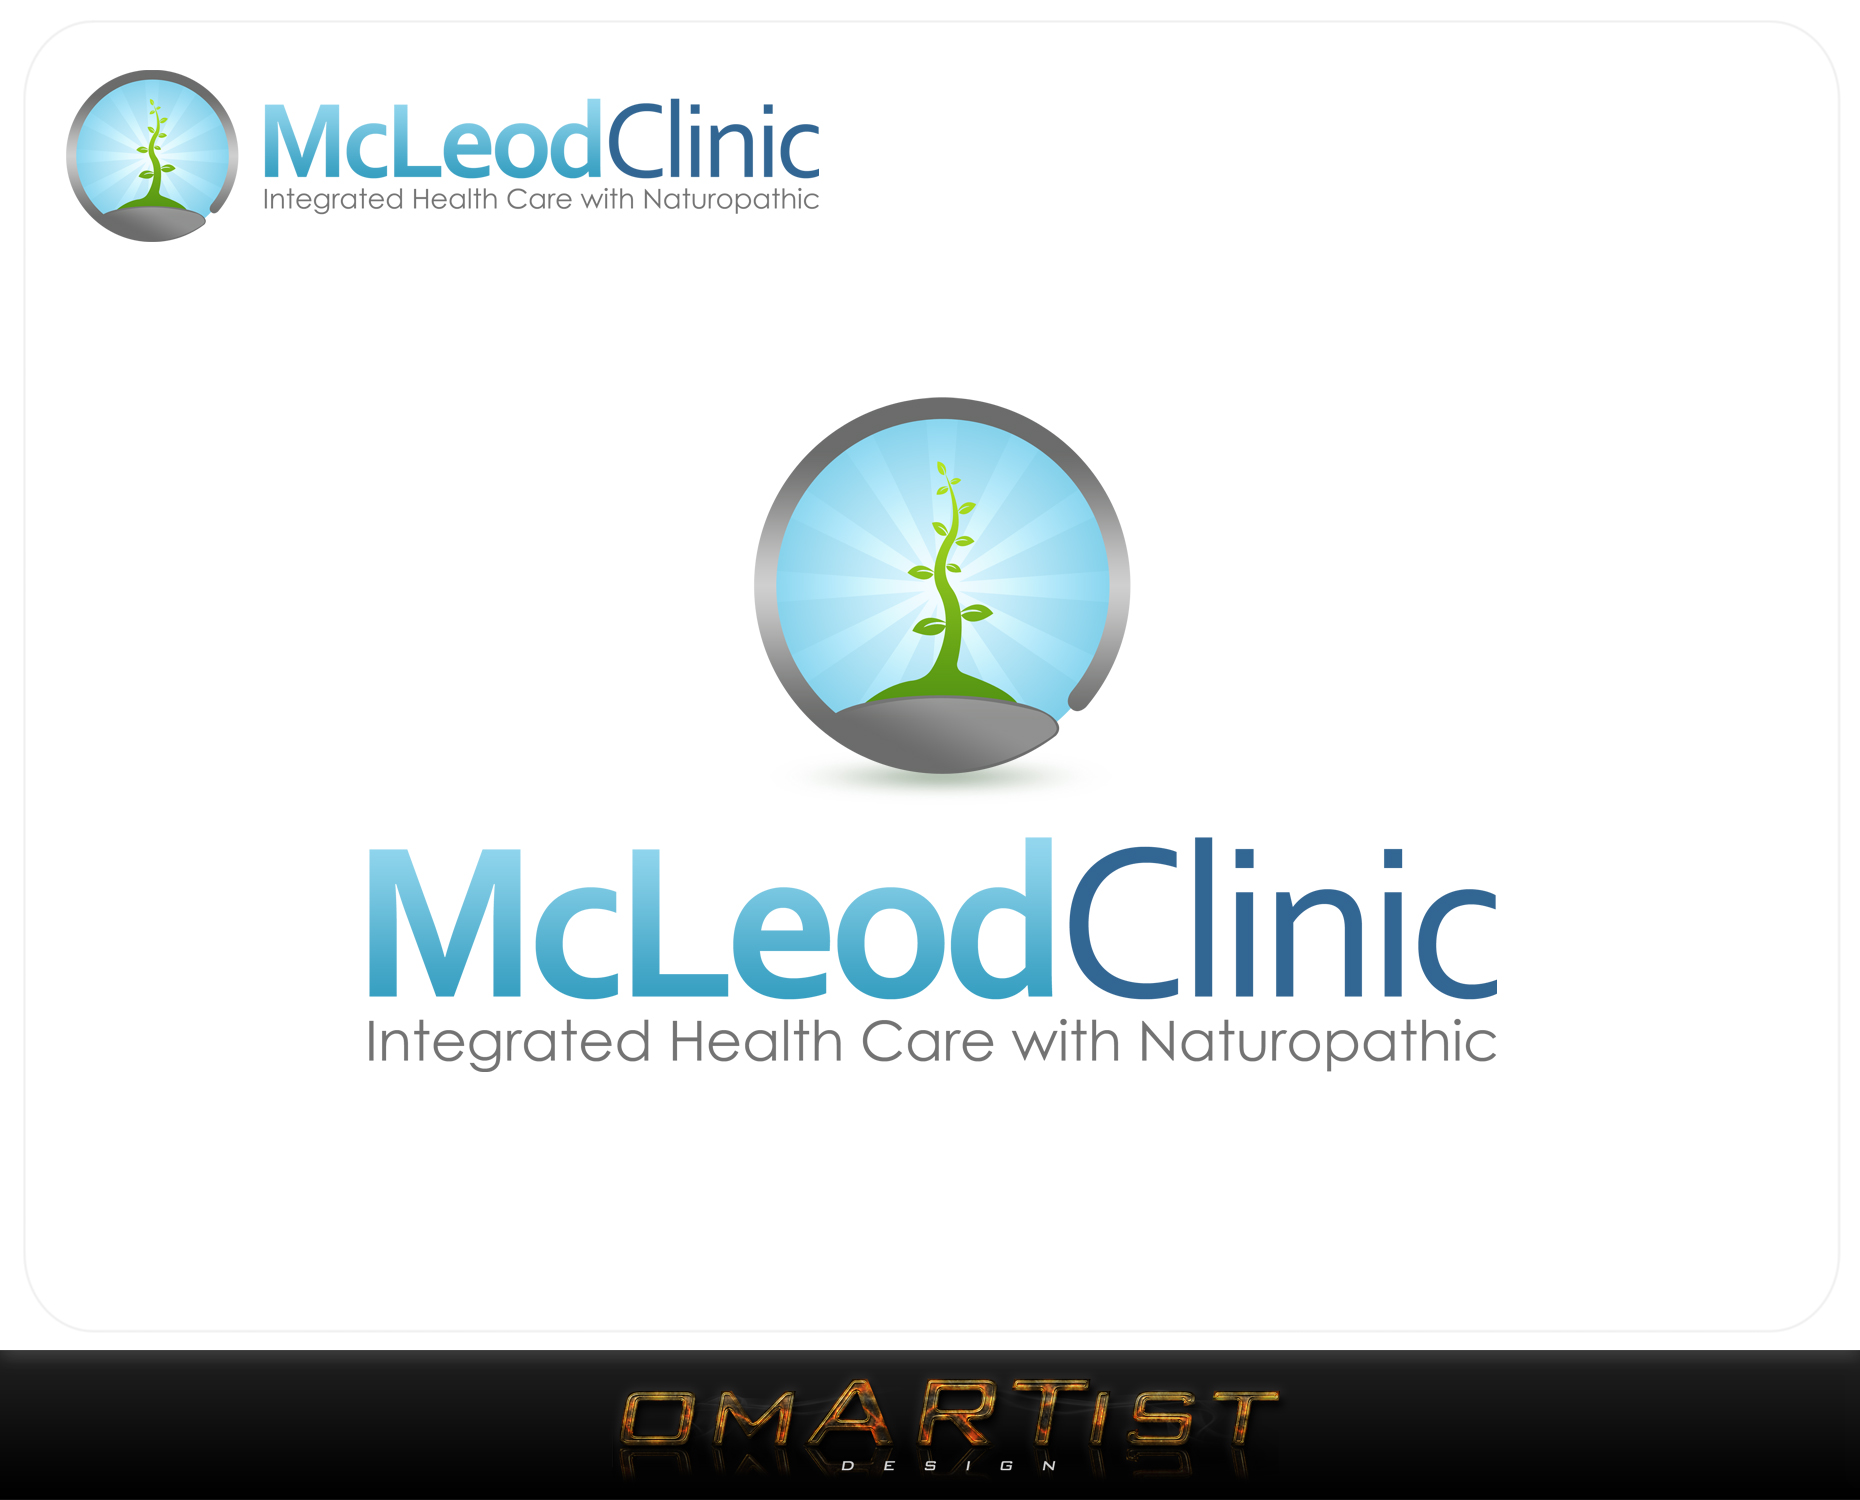 Logo Design by omARTist - Entry No. 103 in the Logo Design Contest Creative Logo Design for McLeod Clinic.